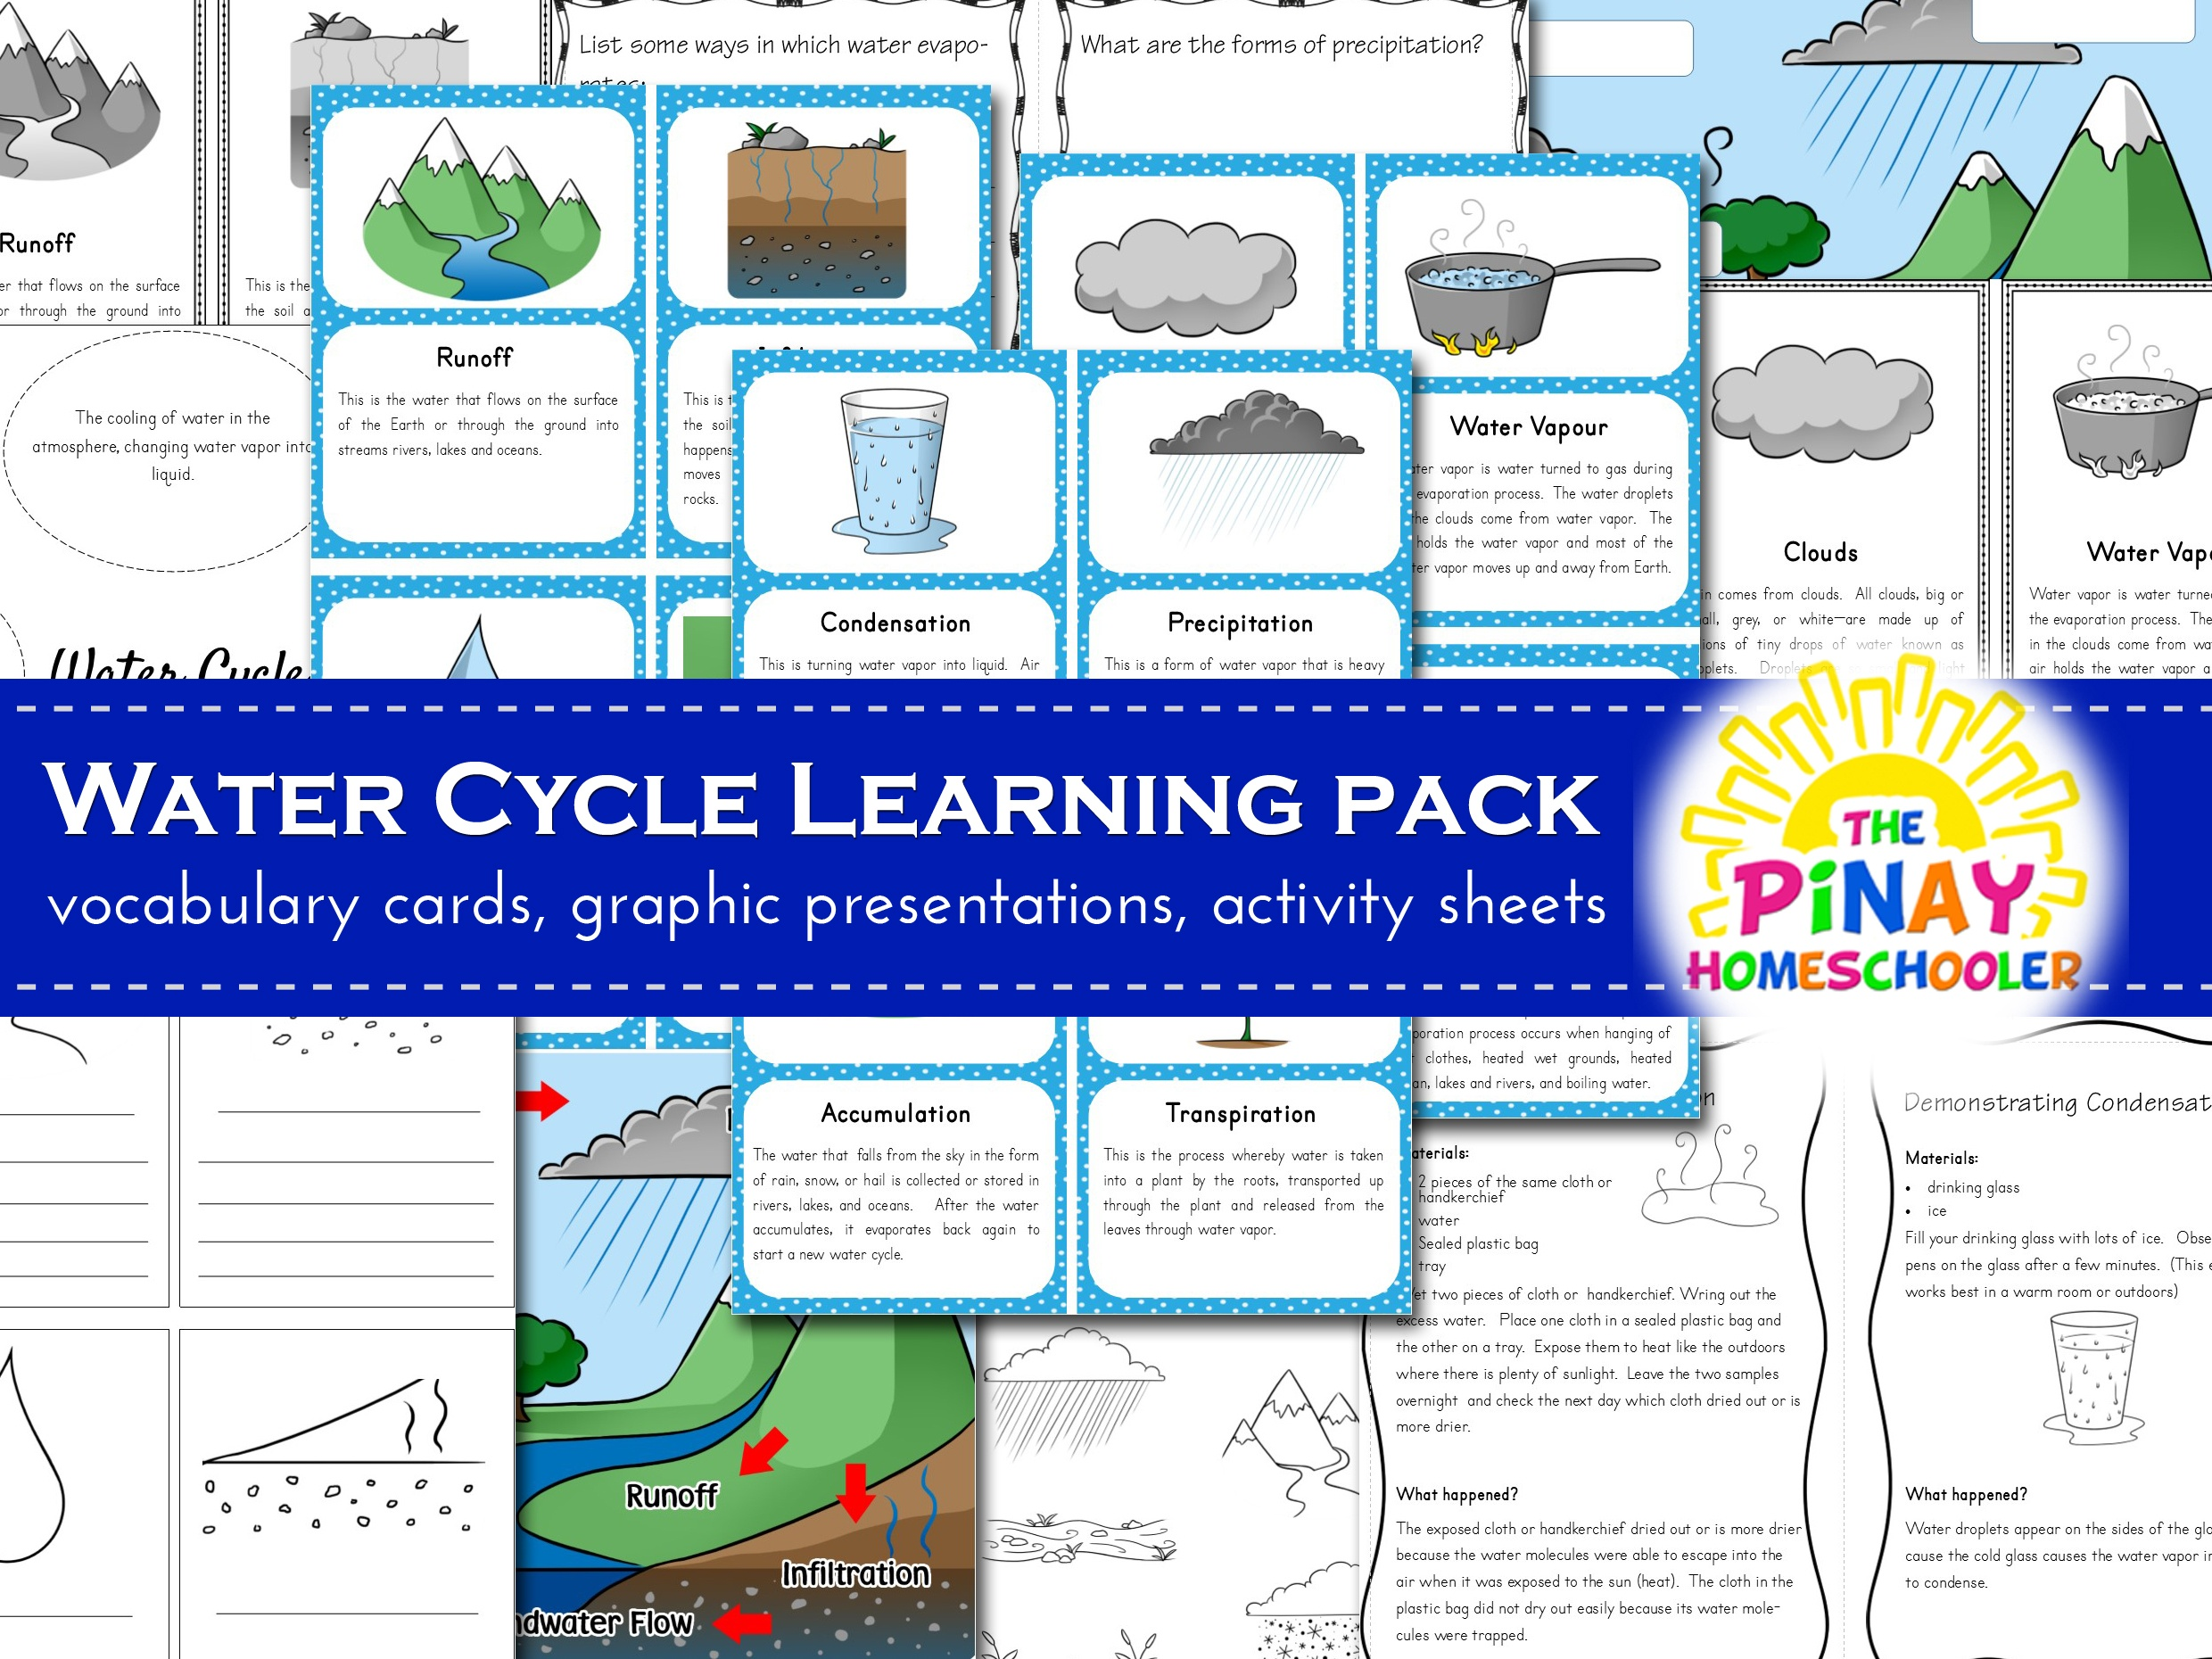 Water Cycle Learning Pack Pinay Homeschooler Shop